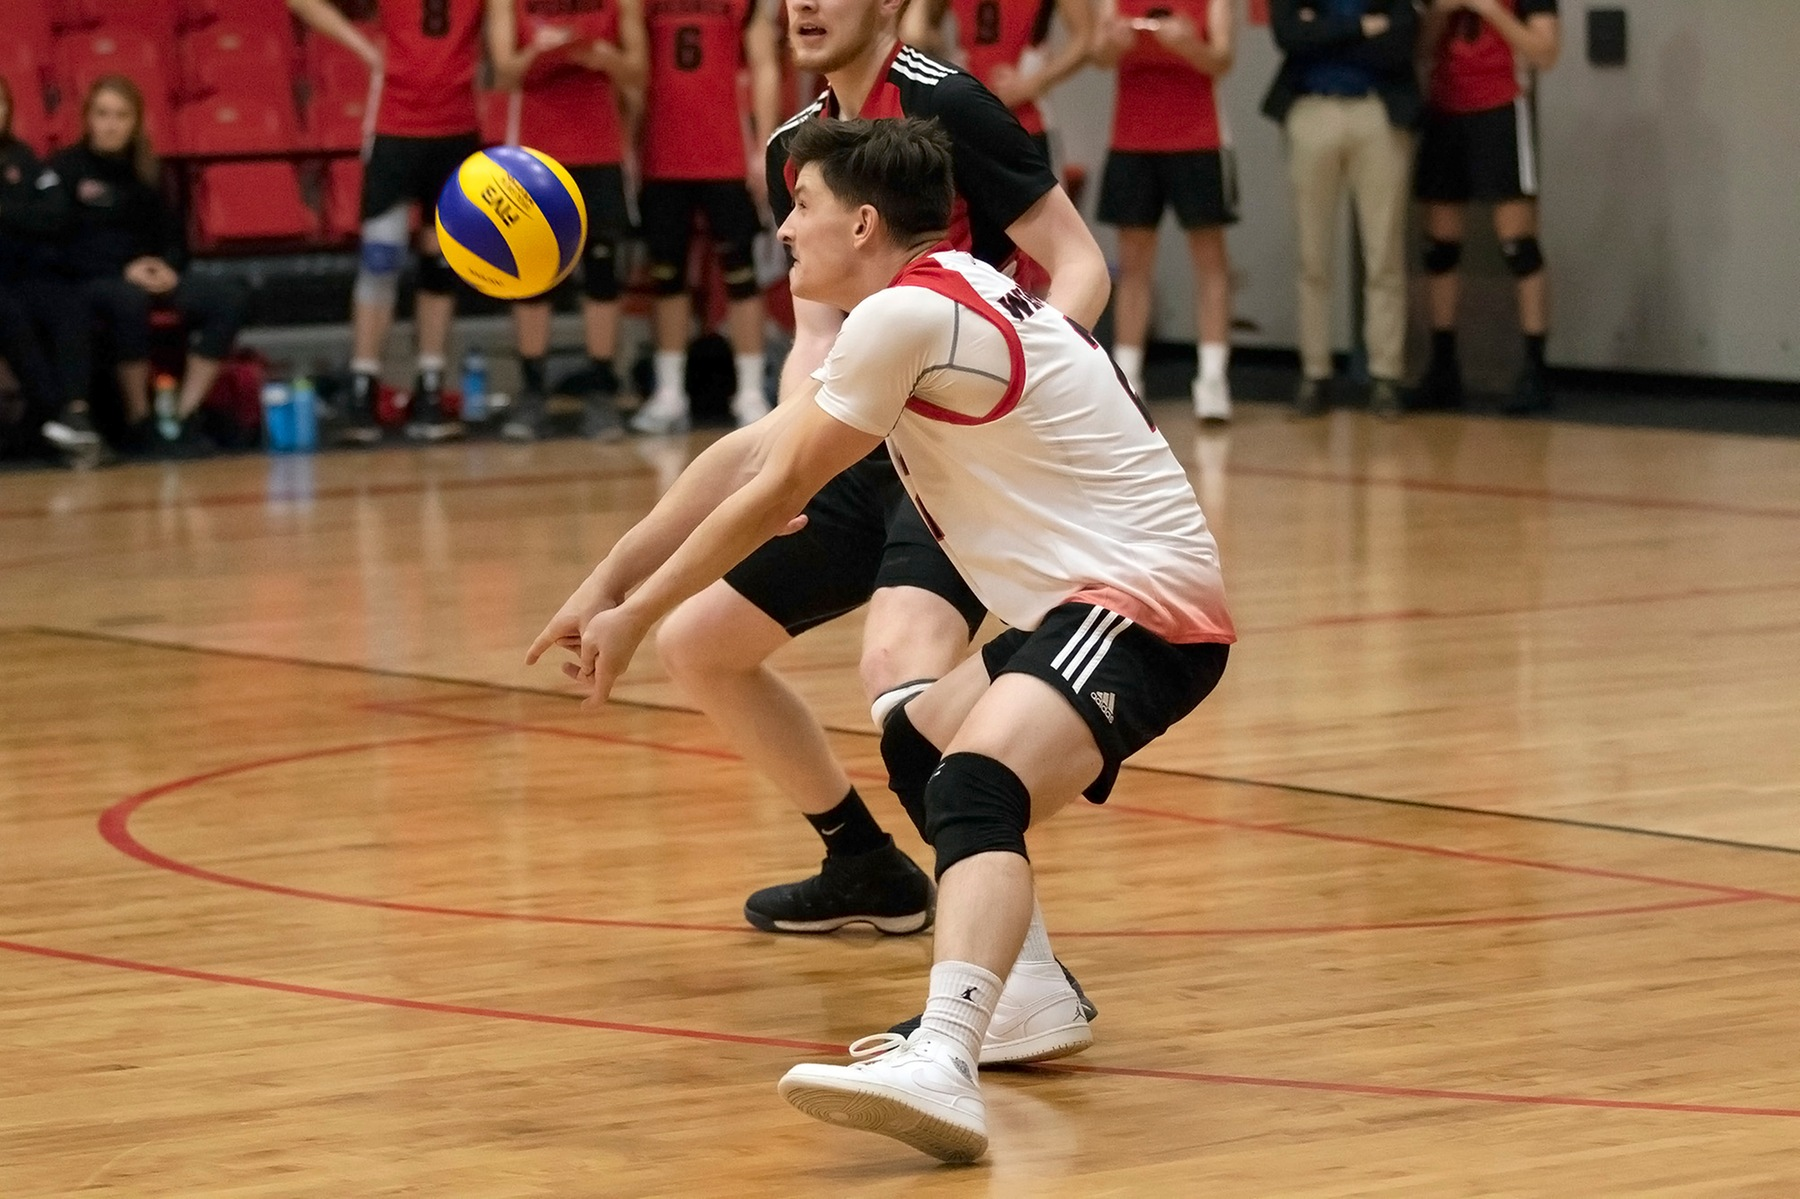 Wesmen libero Darian Picklyk digs up a Mount Royal attack during Winnipeg's loss to the Cougars on Friday, Nov. 23, 2018. (David Larkins/Wesmen Athletics)